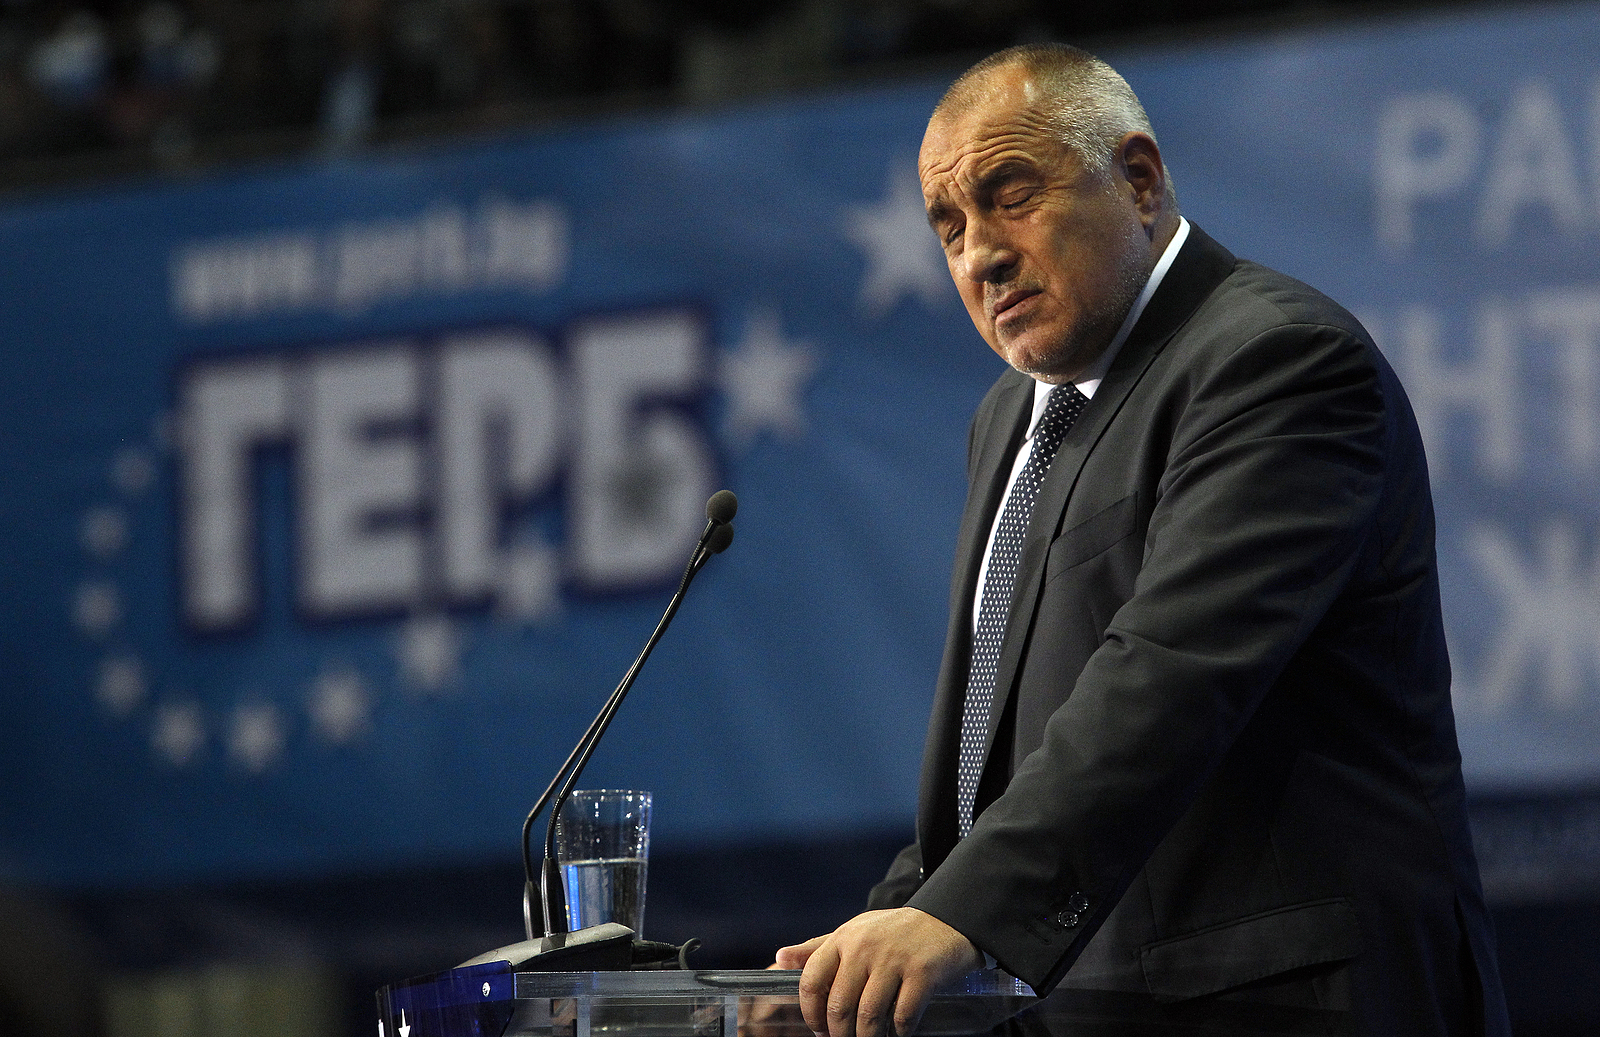 After three failed attempts to form a government, Bulgaria looks set for a new election